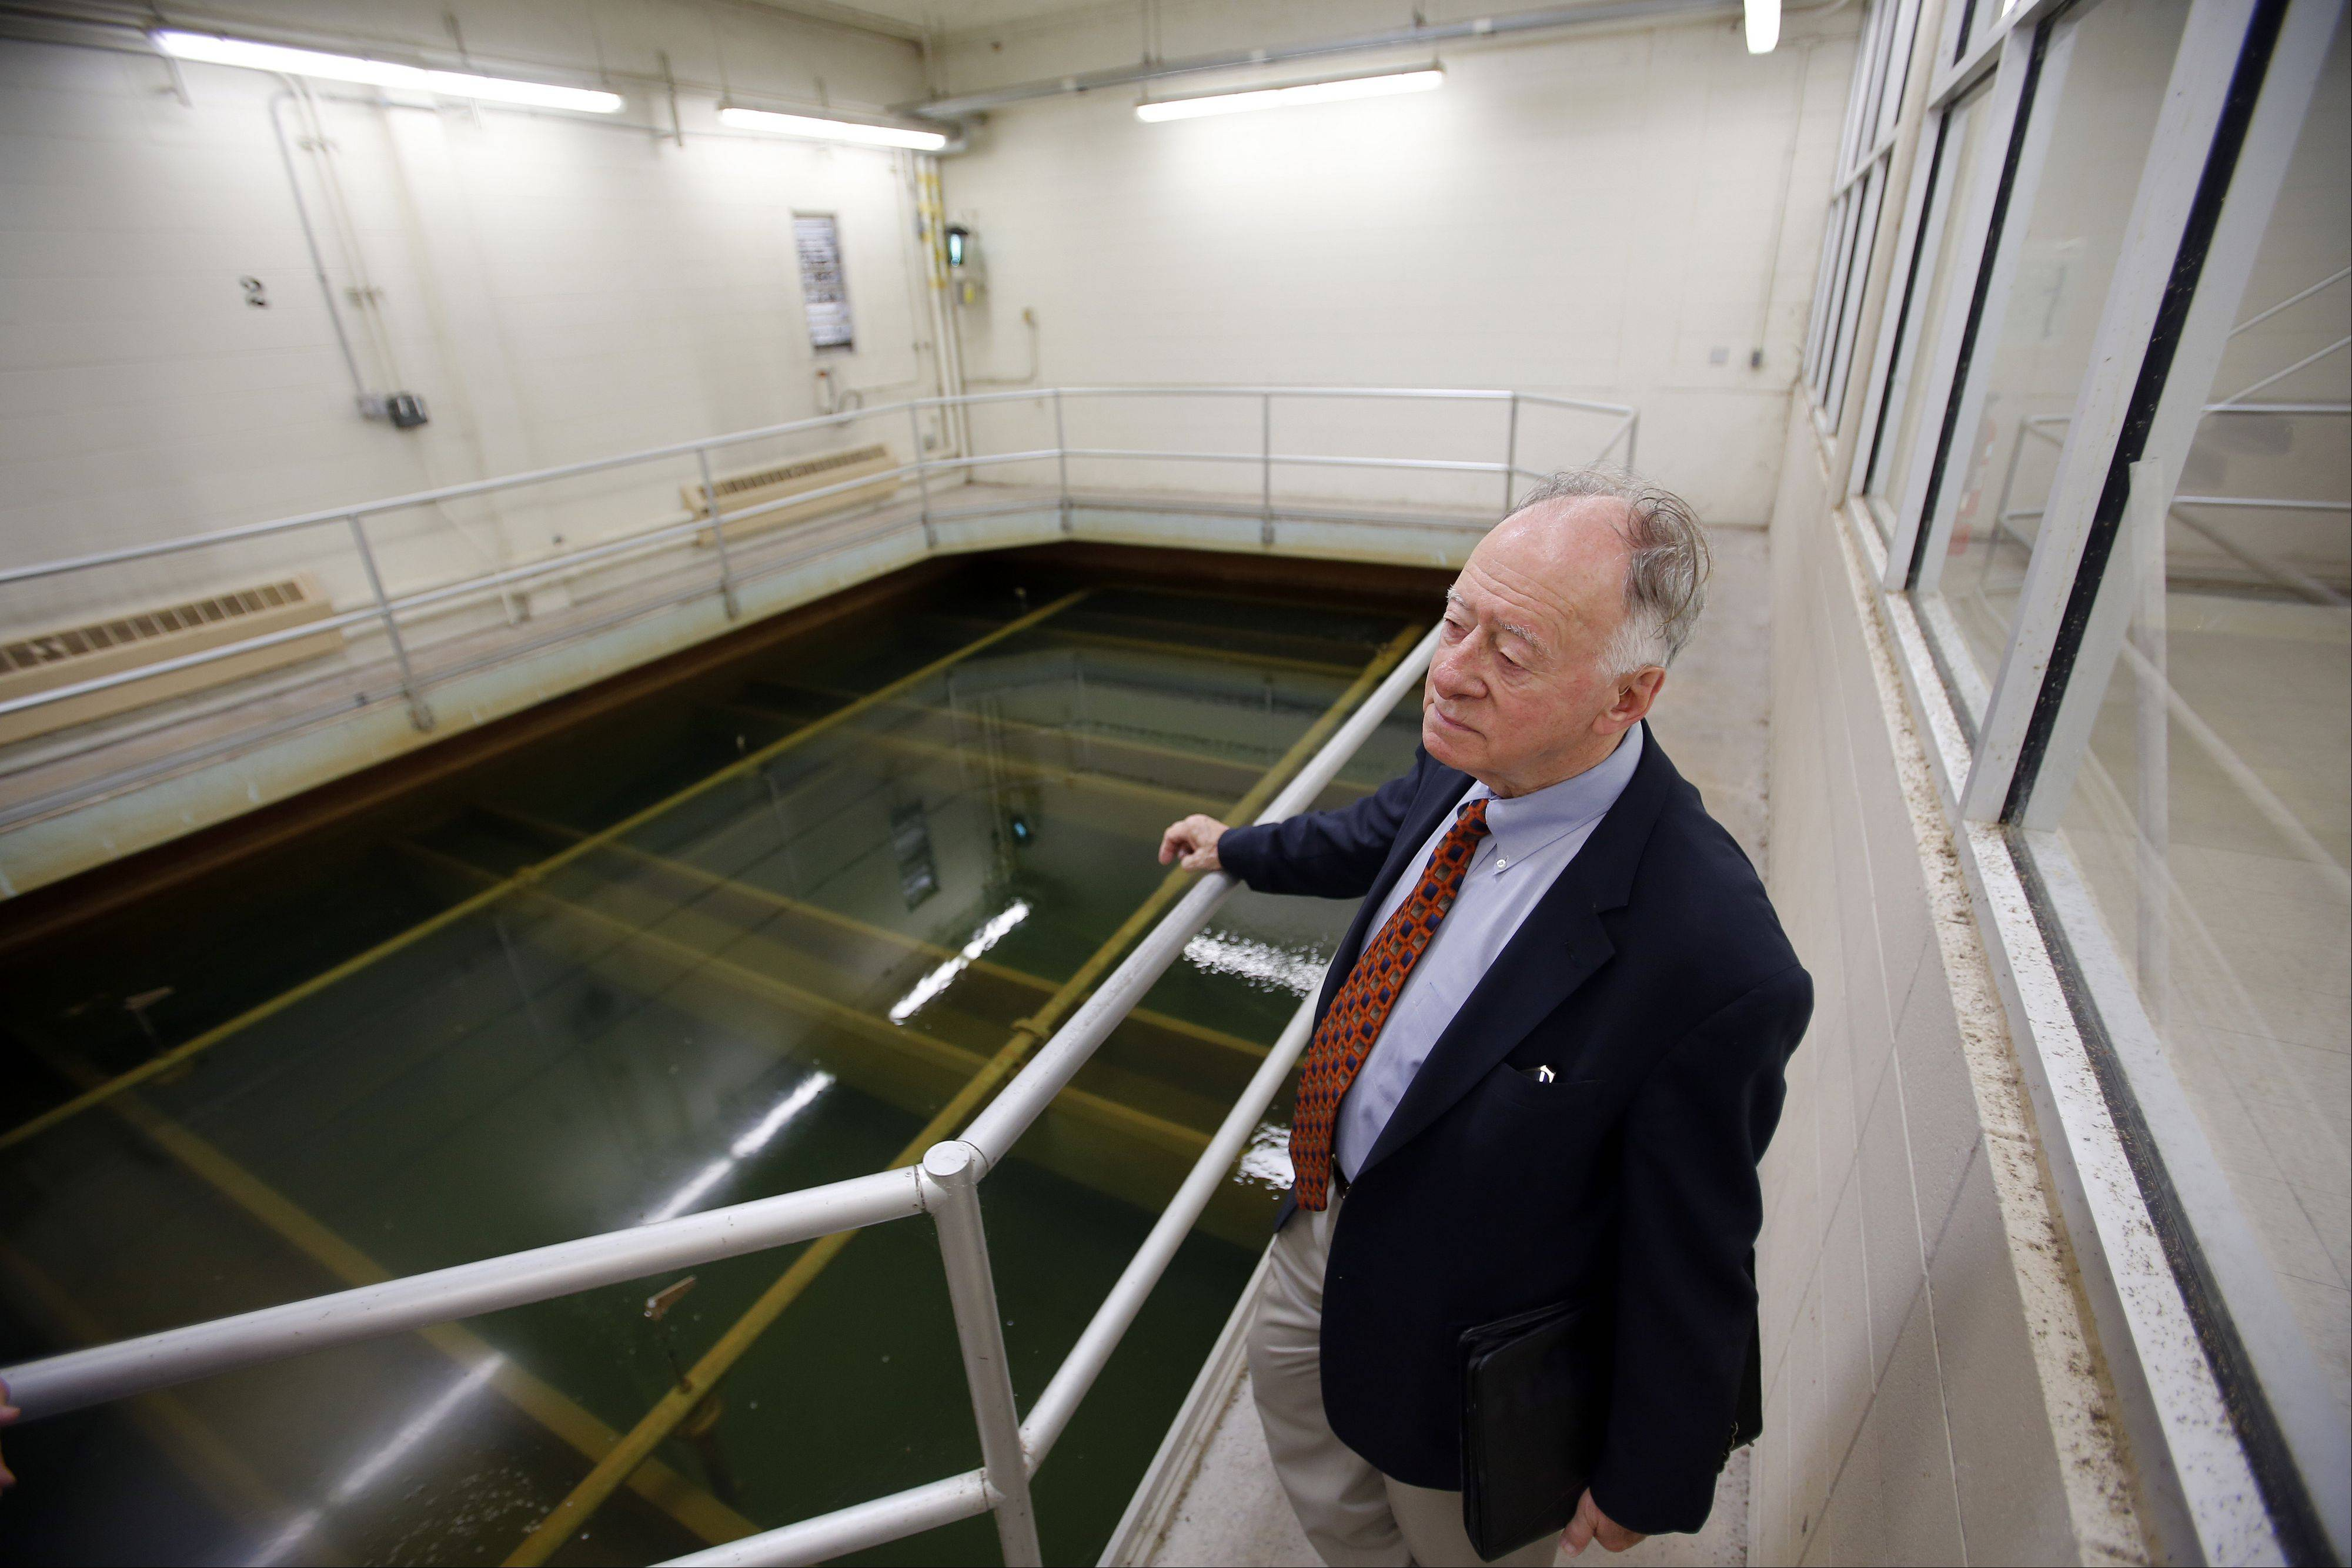 Former Elgin City Manager Leo Nelson tours the Riverside Drive Water Treatment Plant, which the city plans to name after him. Nelson spearheaded the idea of building the facility in the 1970s.